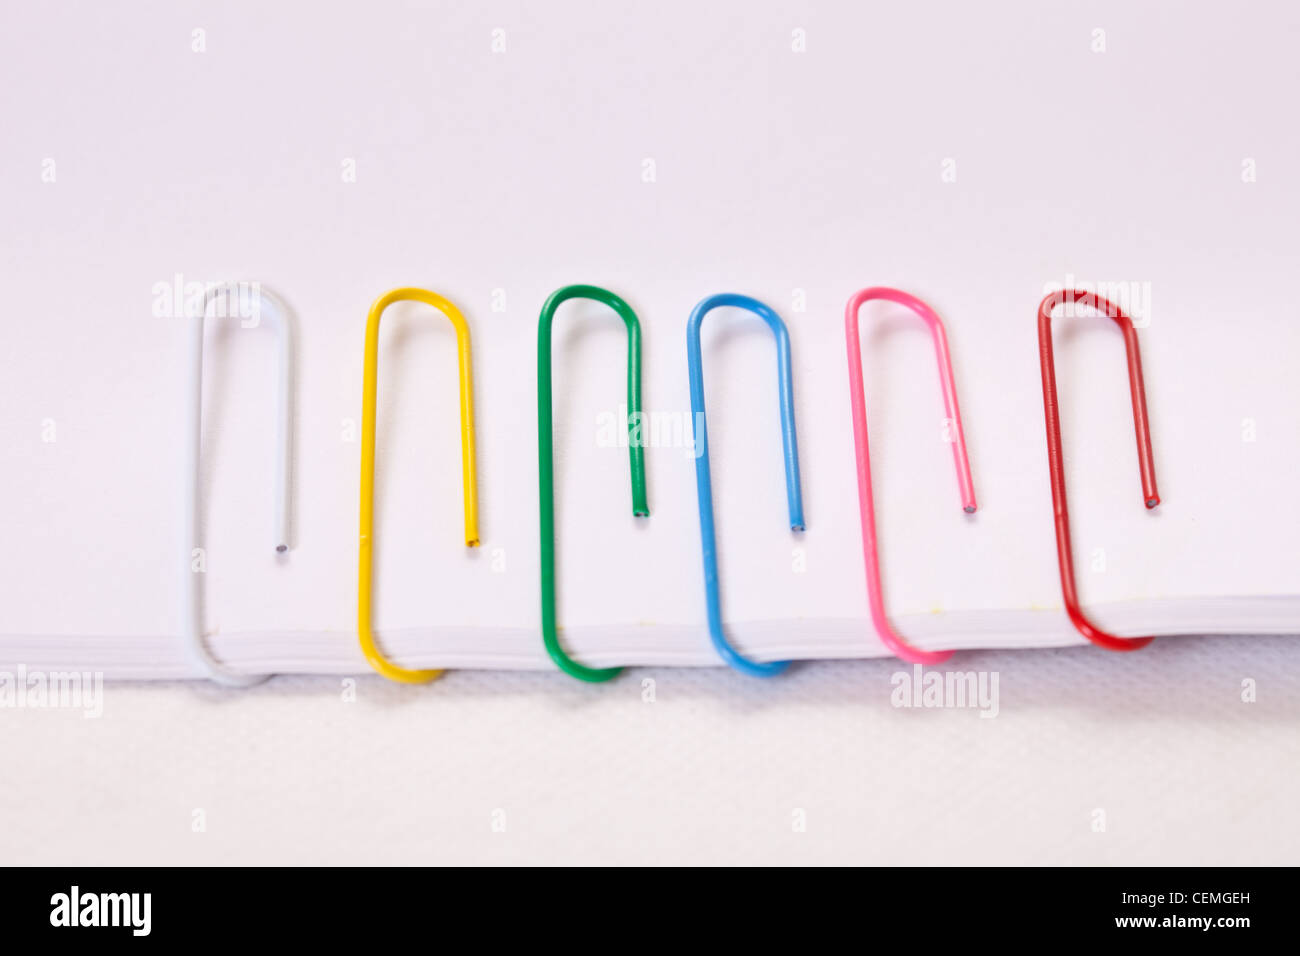 multi colored paper clips,office supplies,stationary - Stock Image